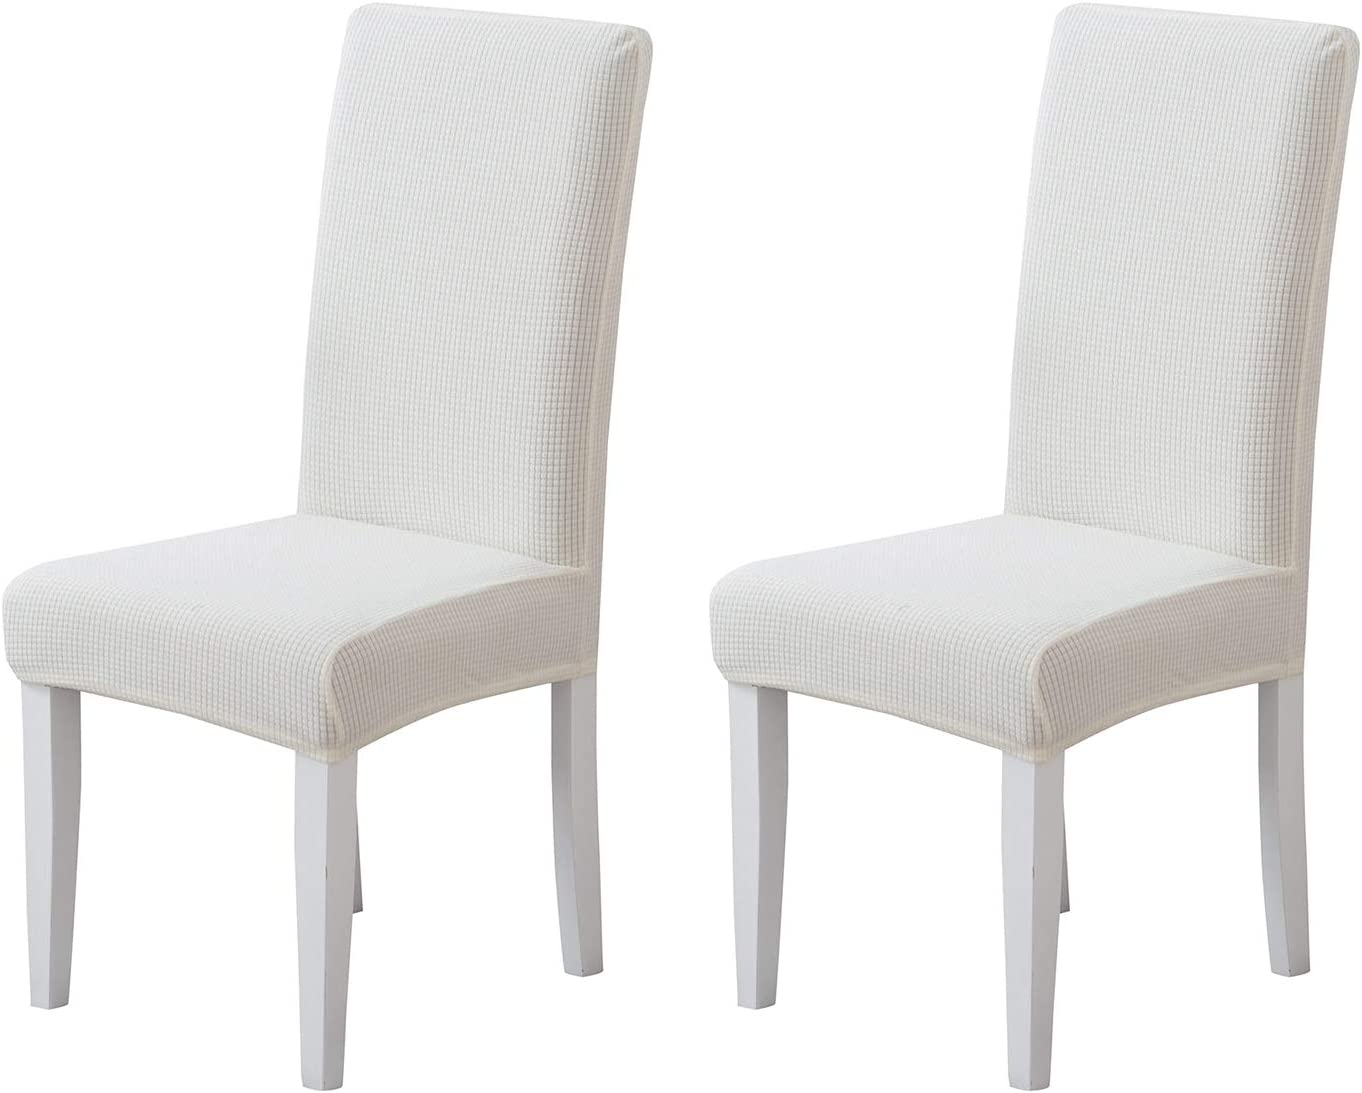 Pack of 2 - Dining Room Chair Slipcovers, Stretch Spandex Dining Chair Covers, Furniture Protector Covers Removable & Washable, Perfect for Dining Room, Restaurant, Hotel, Ceremony, Event White